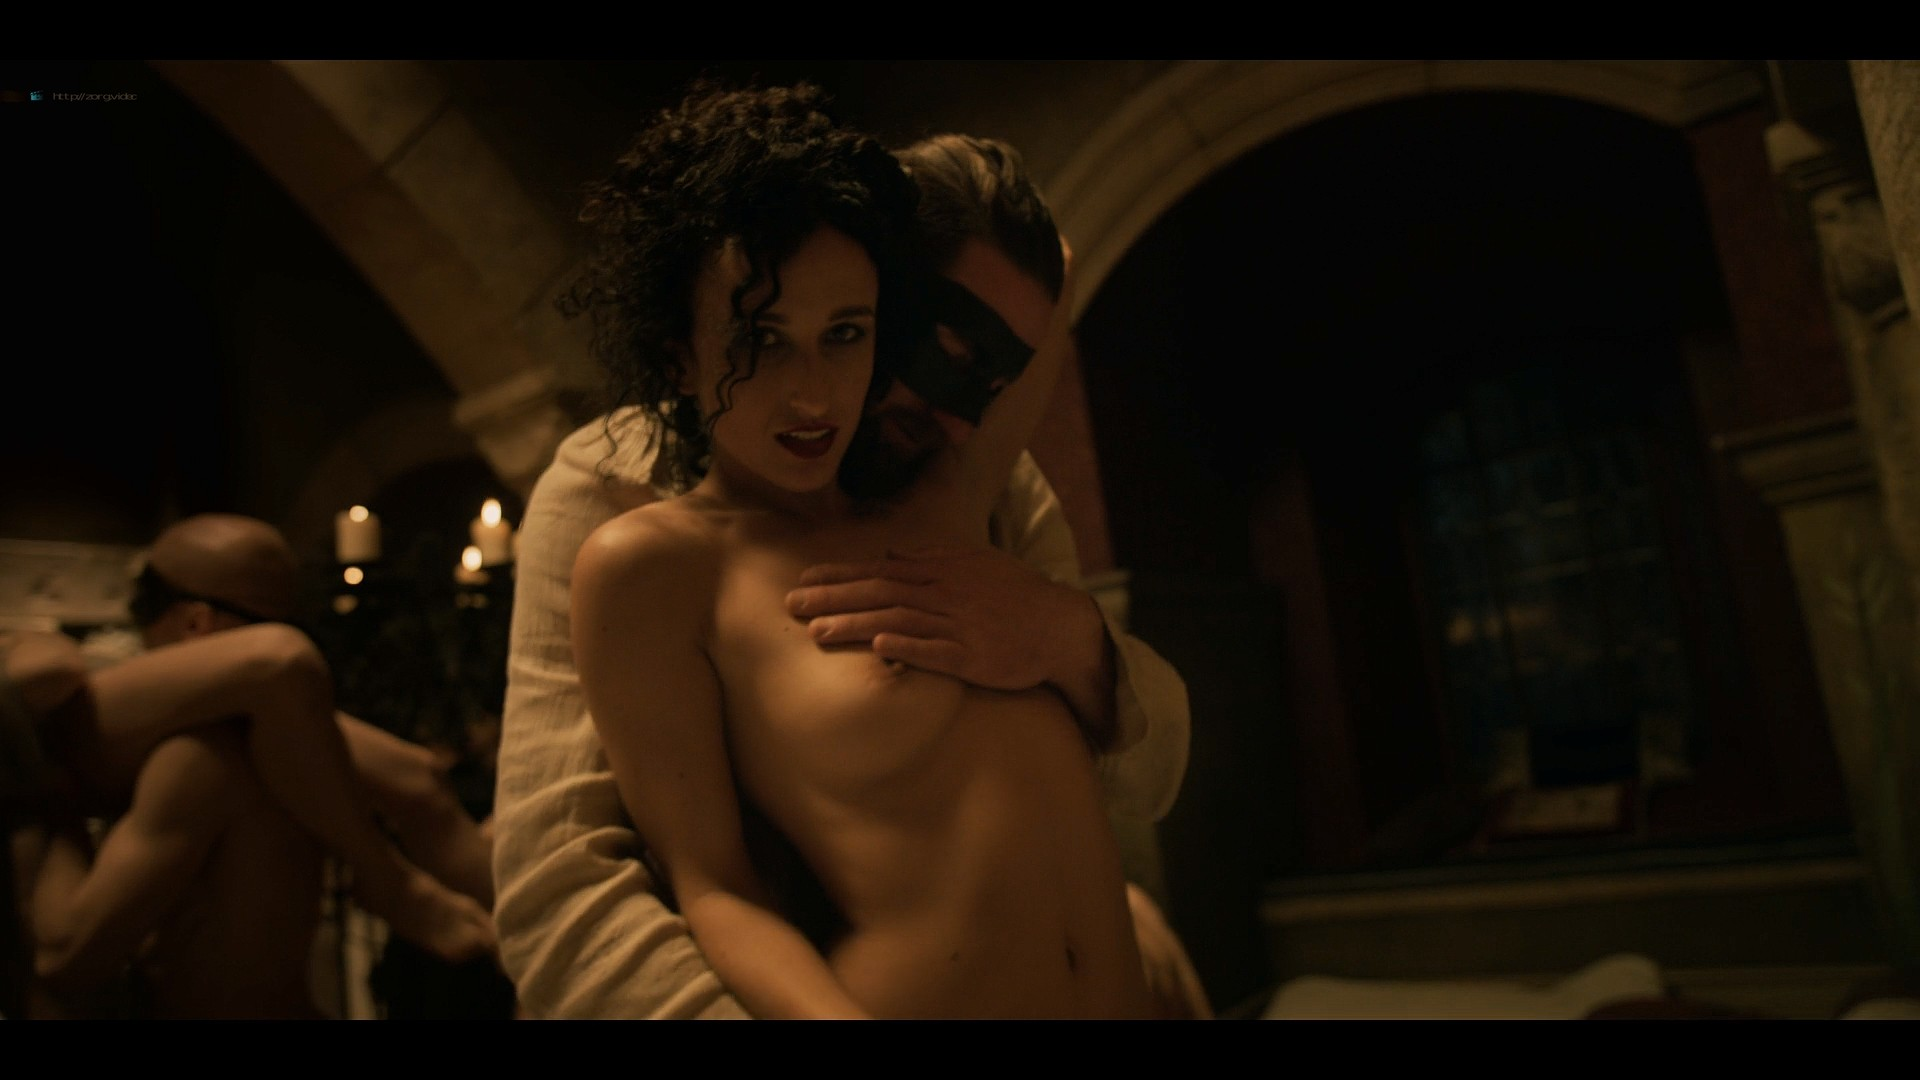 Anya Chalotra nude others nude too - The Witcher (2019) s1e5-6 HD 1080p WEB (19)